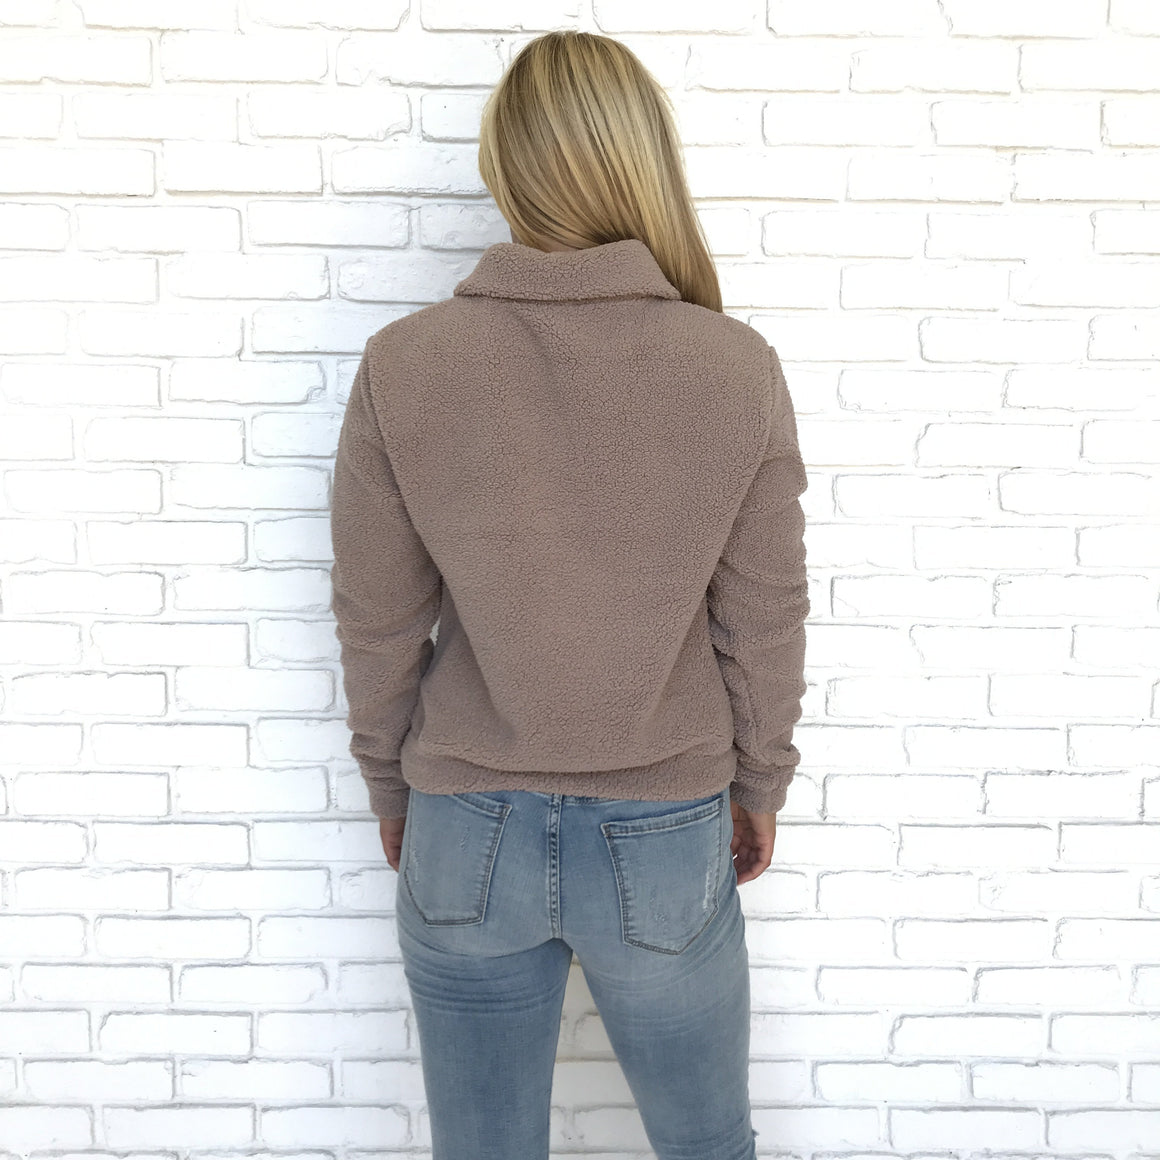 Aspen Nights Mocha Soft Sweater